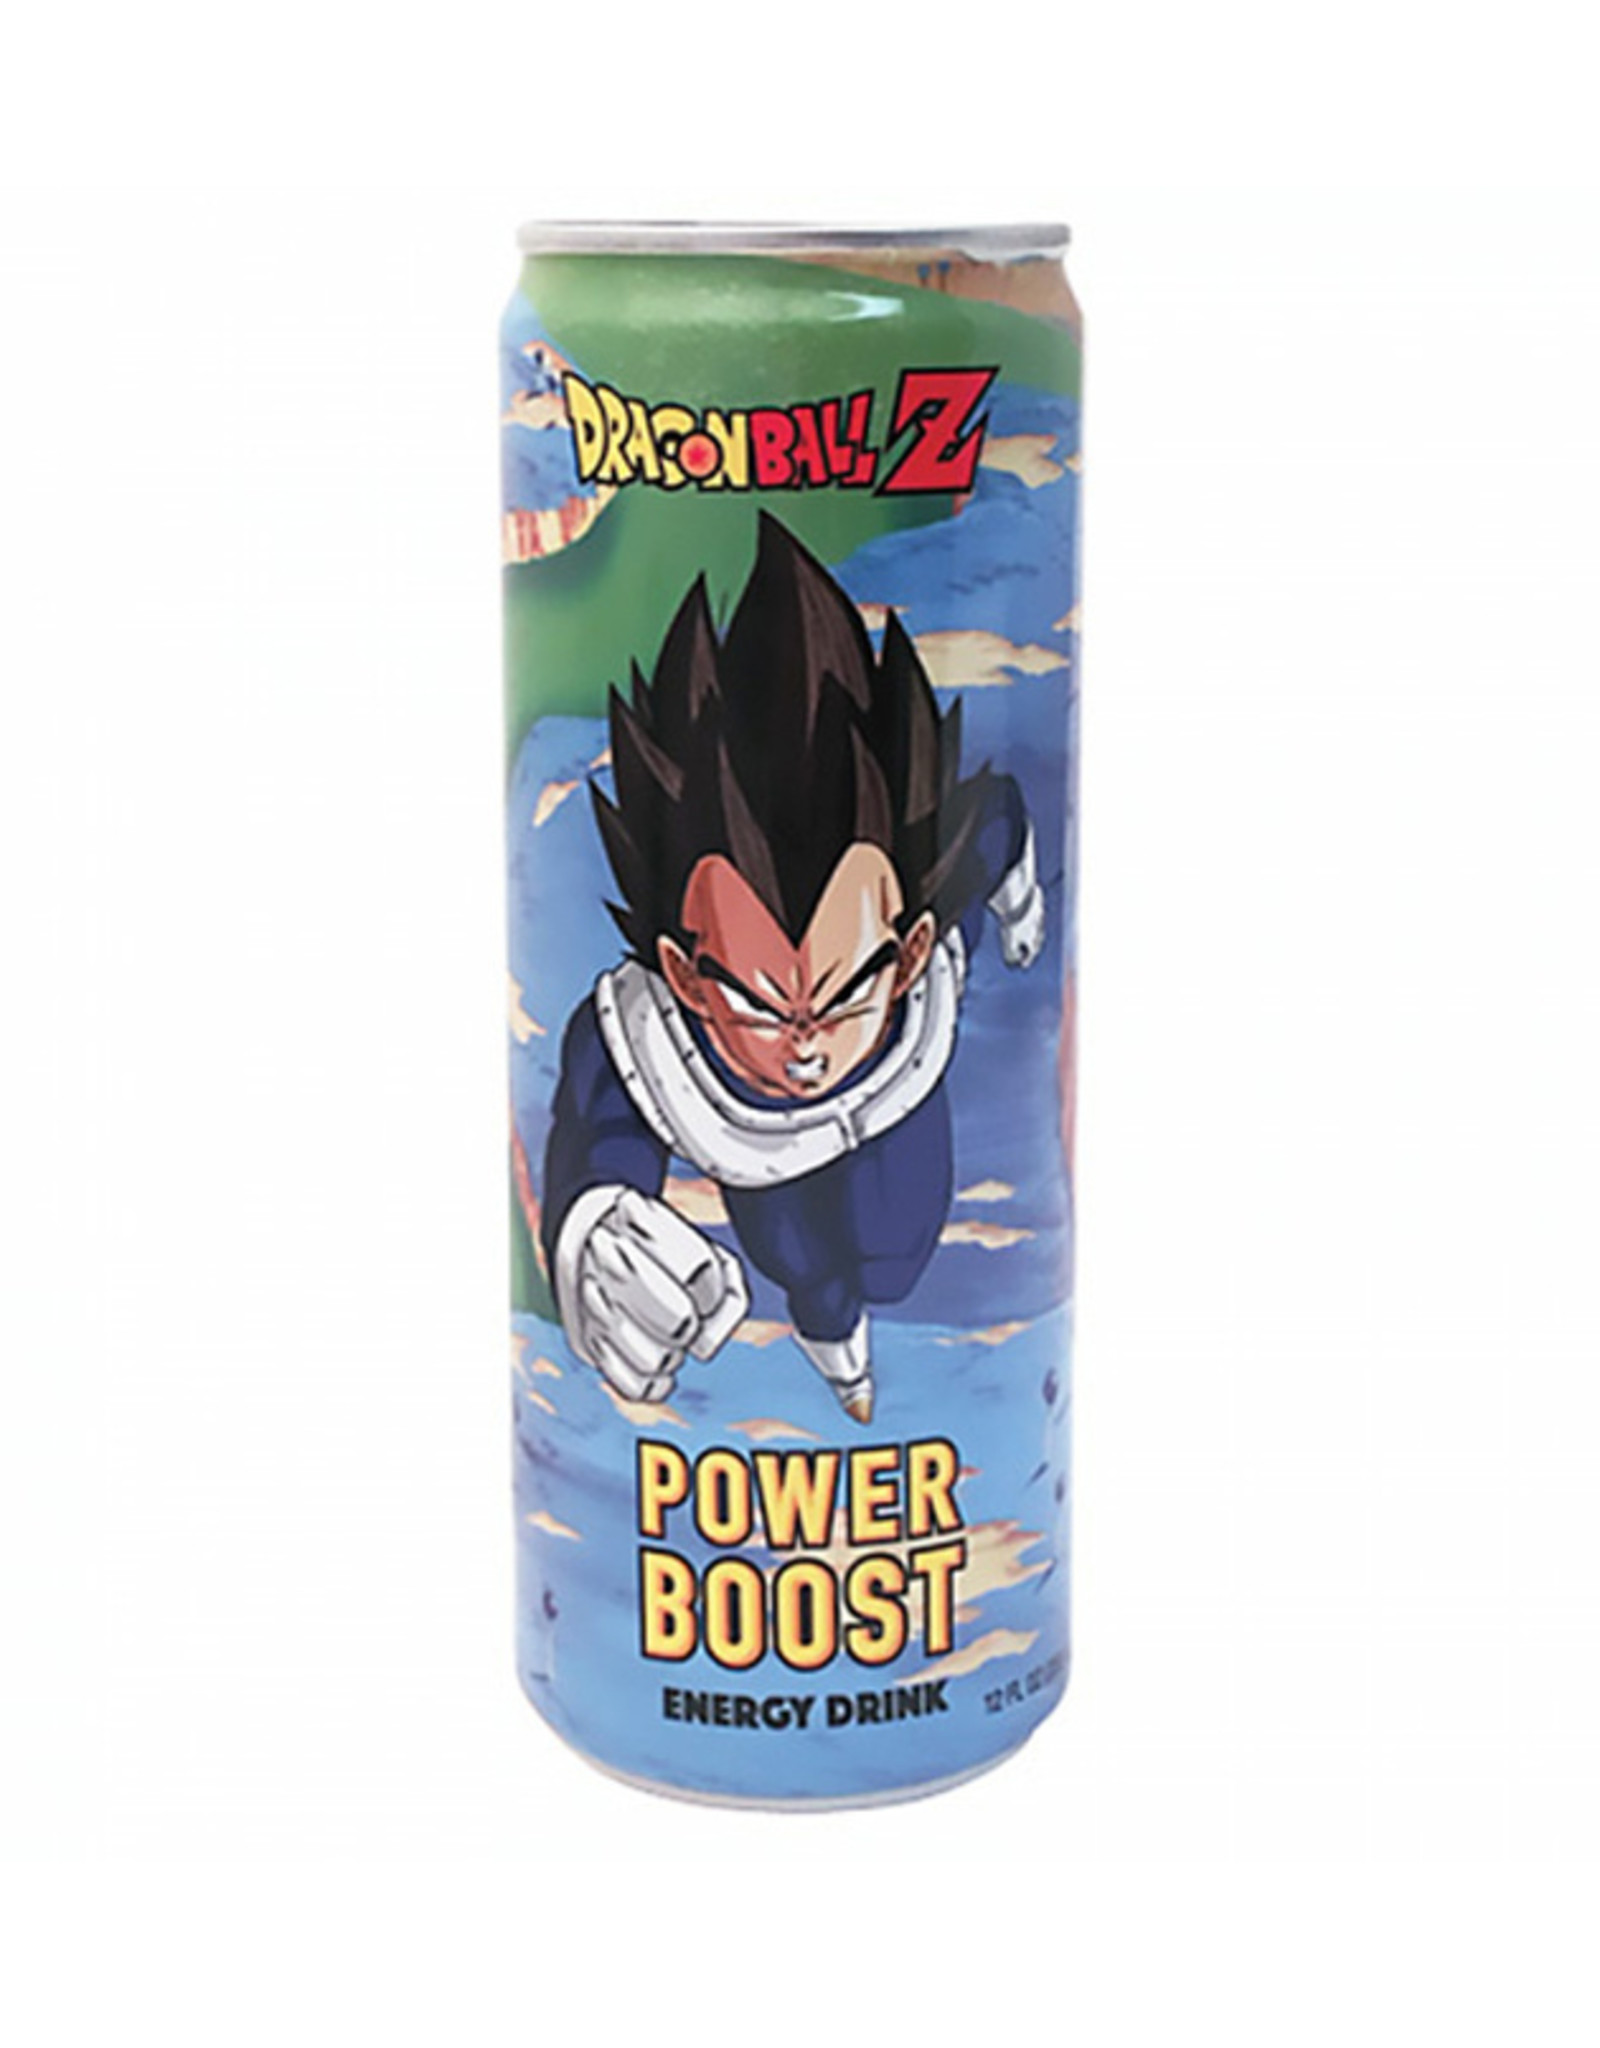 Dragon Ball Z Power Boost Energy Drink